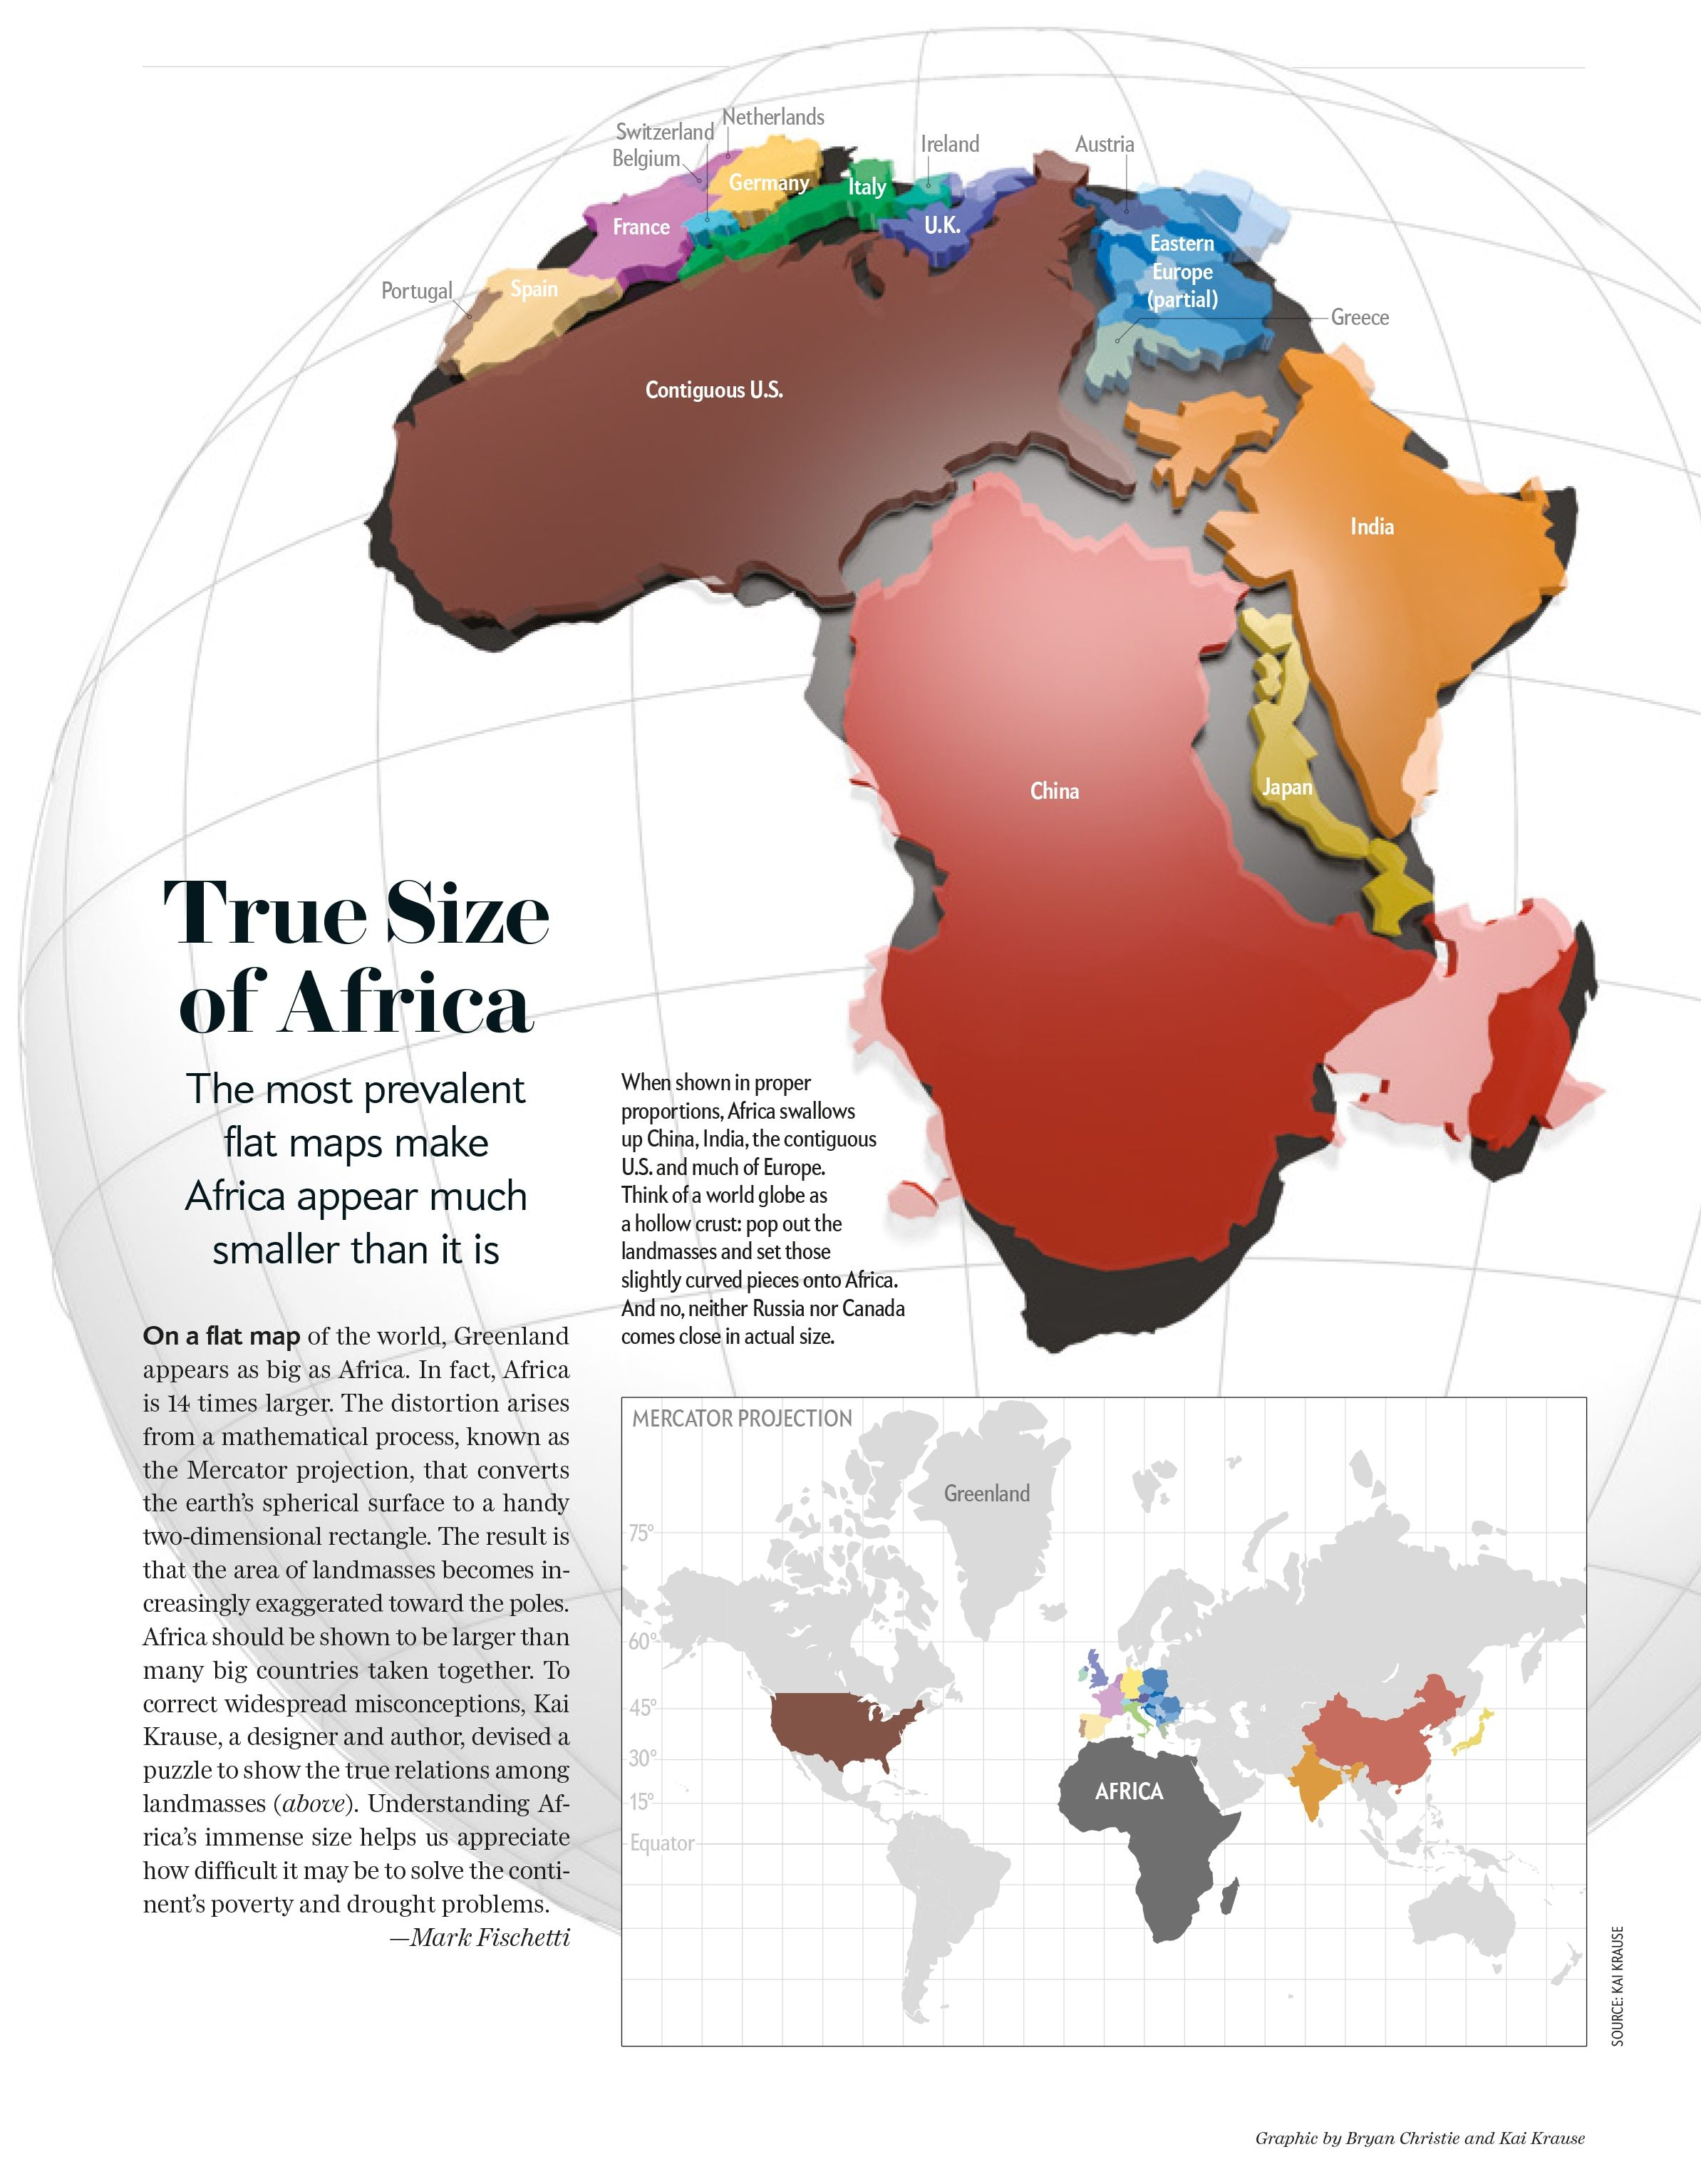 Africa dwarfs china europe and the us scientific american africa dwarfs china europe and the us scientific american gumiabroncs Choice Image